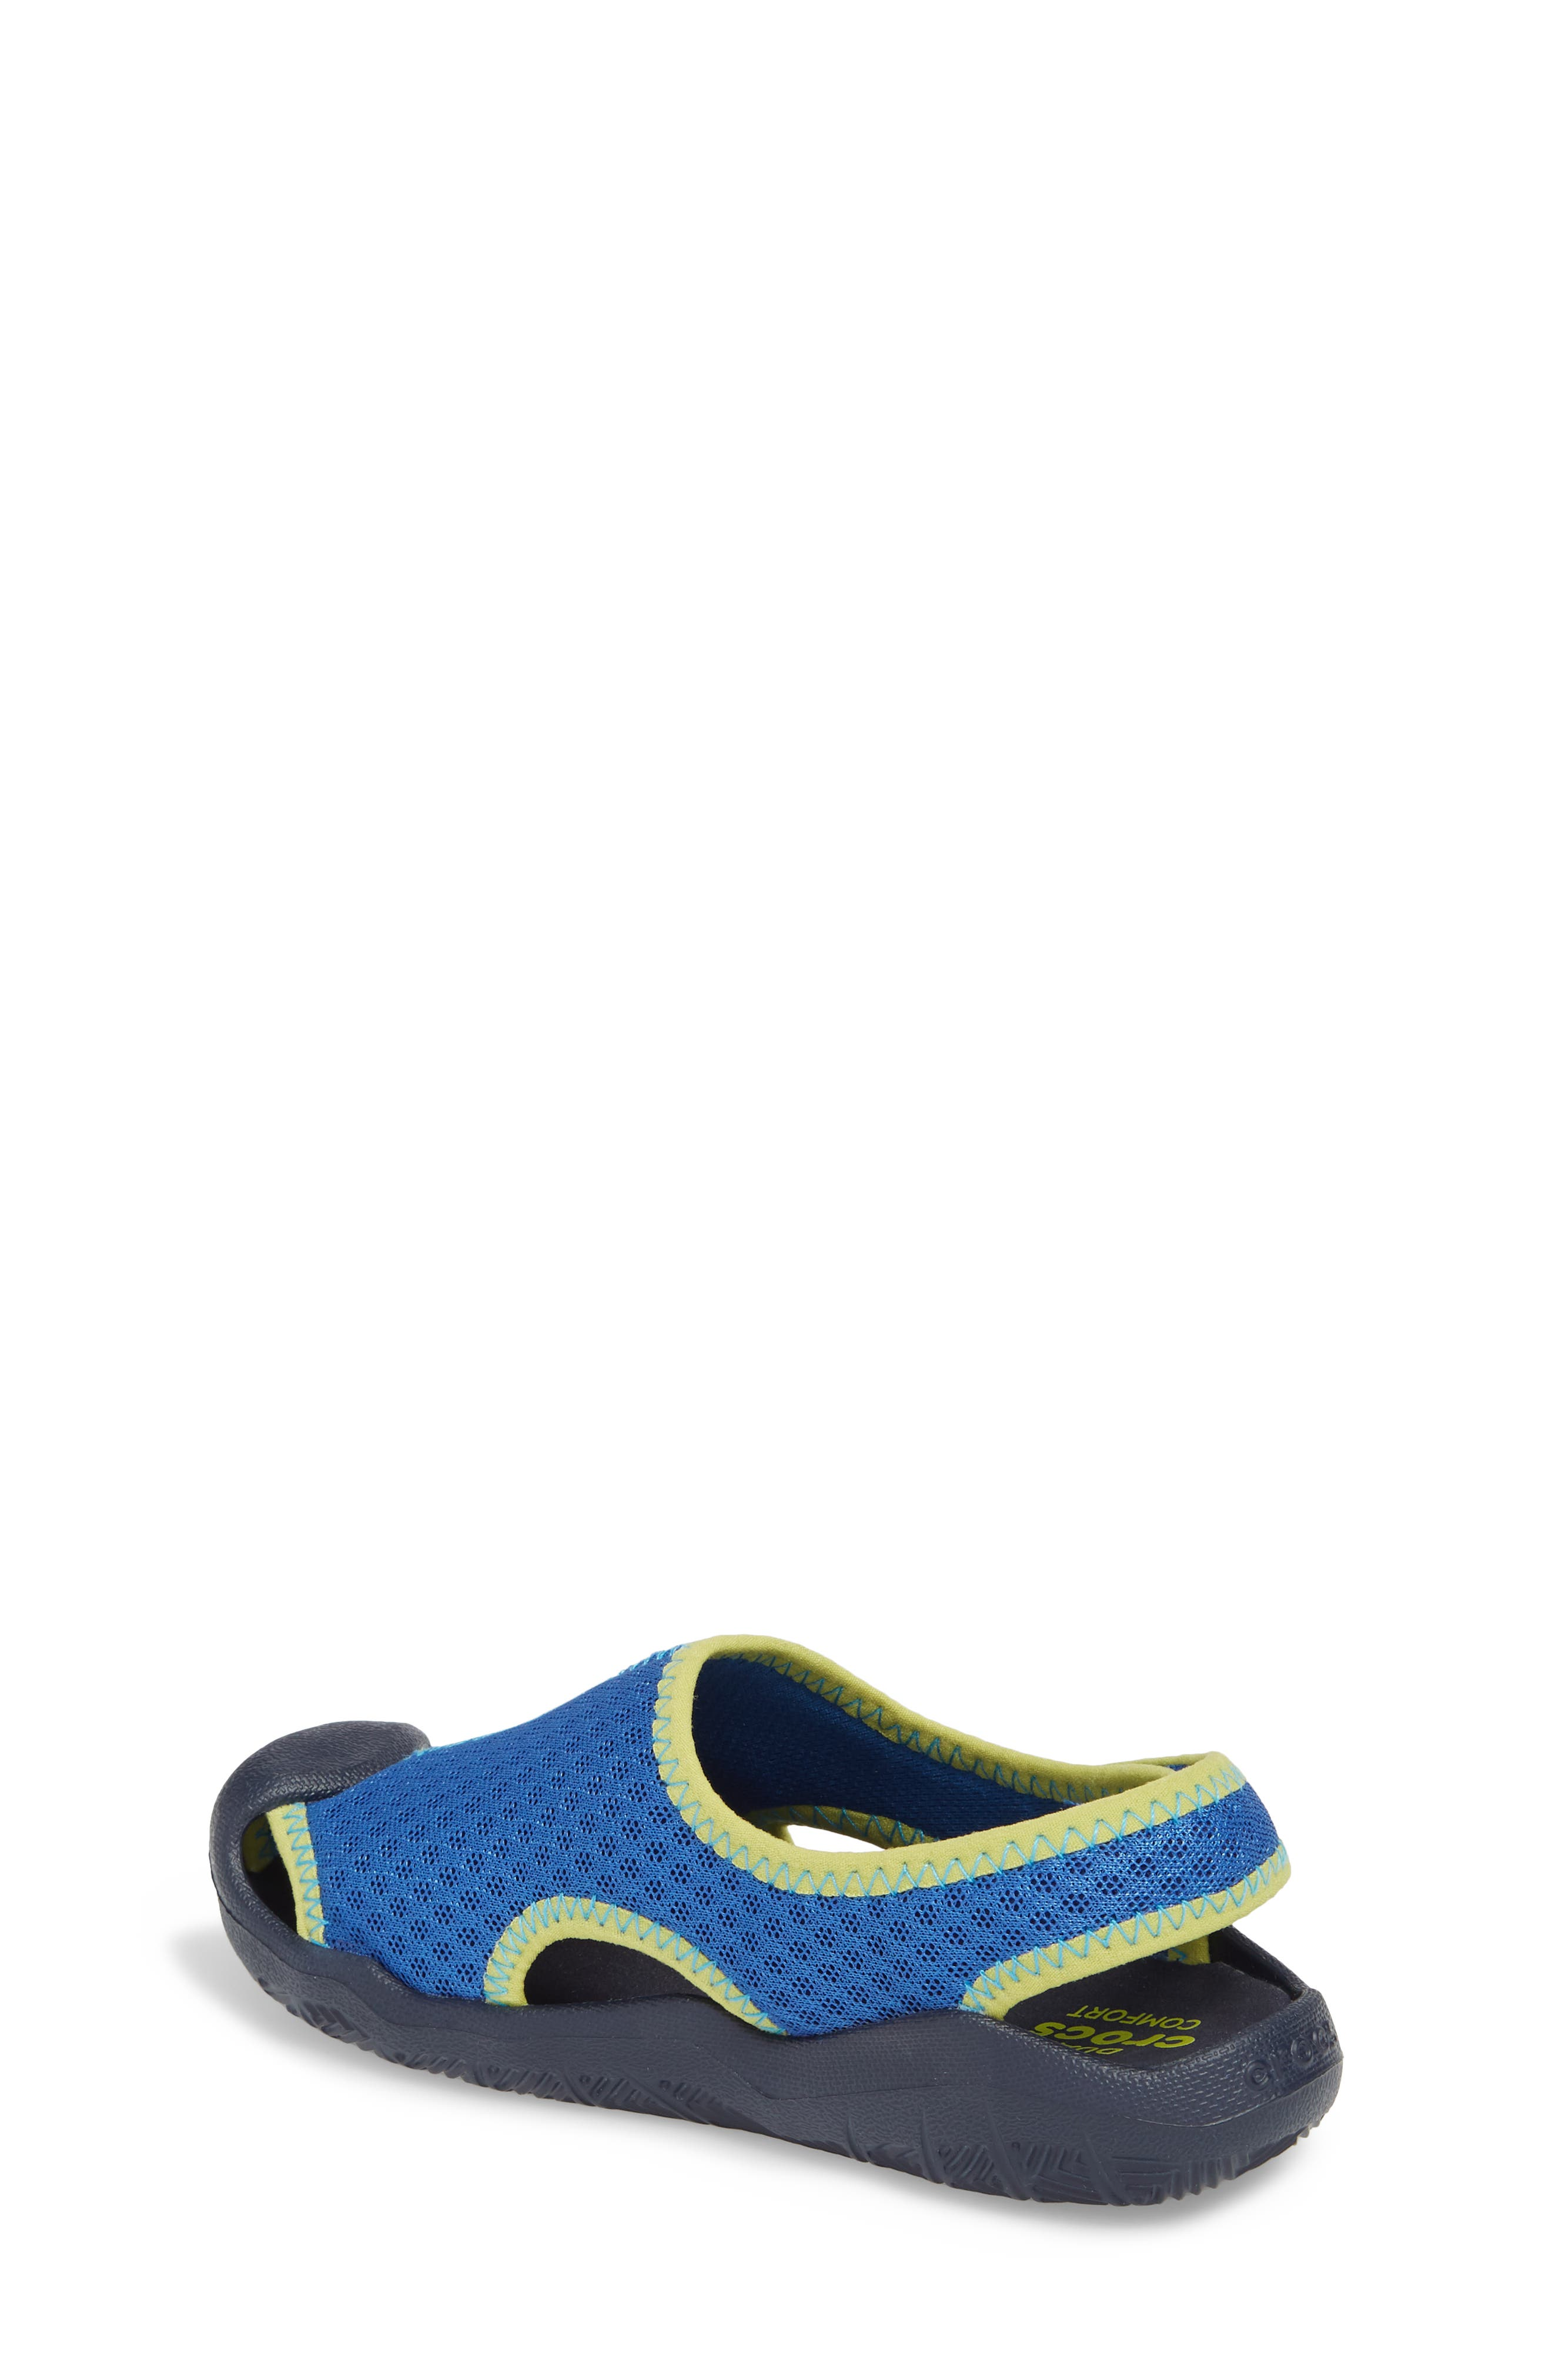 Swiftwater Sandal,                             Alternate thumbnail 9, color,